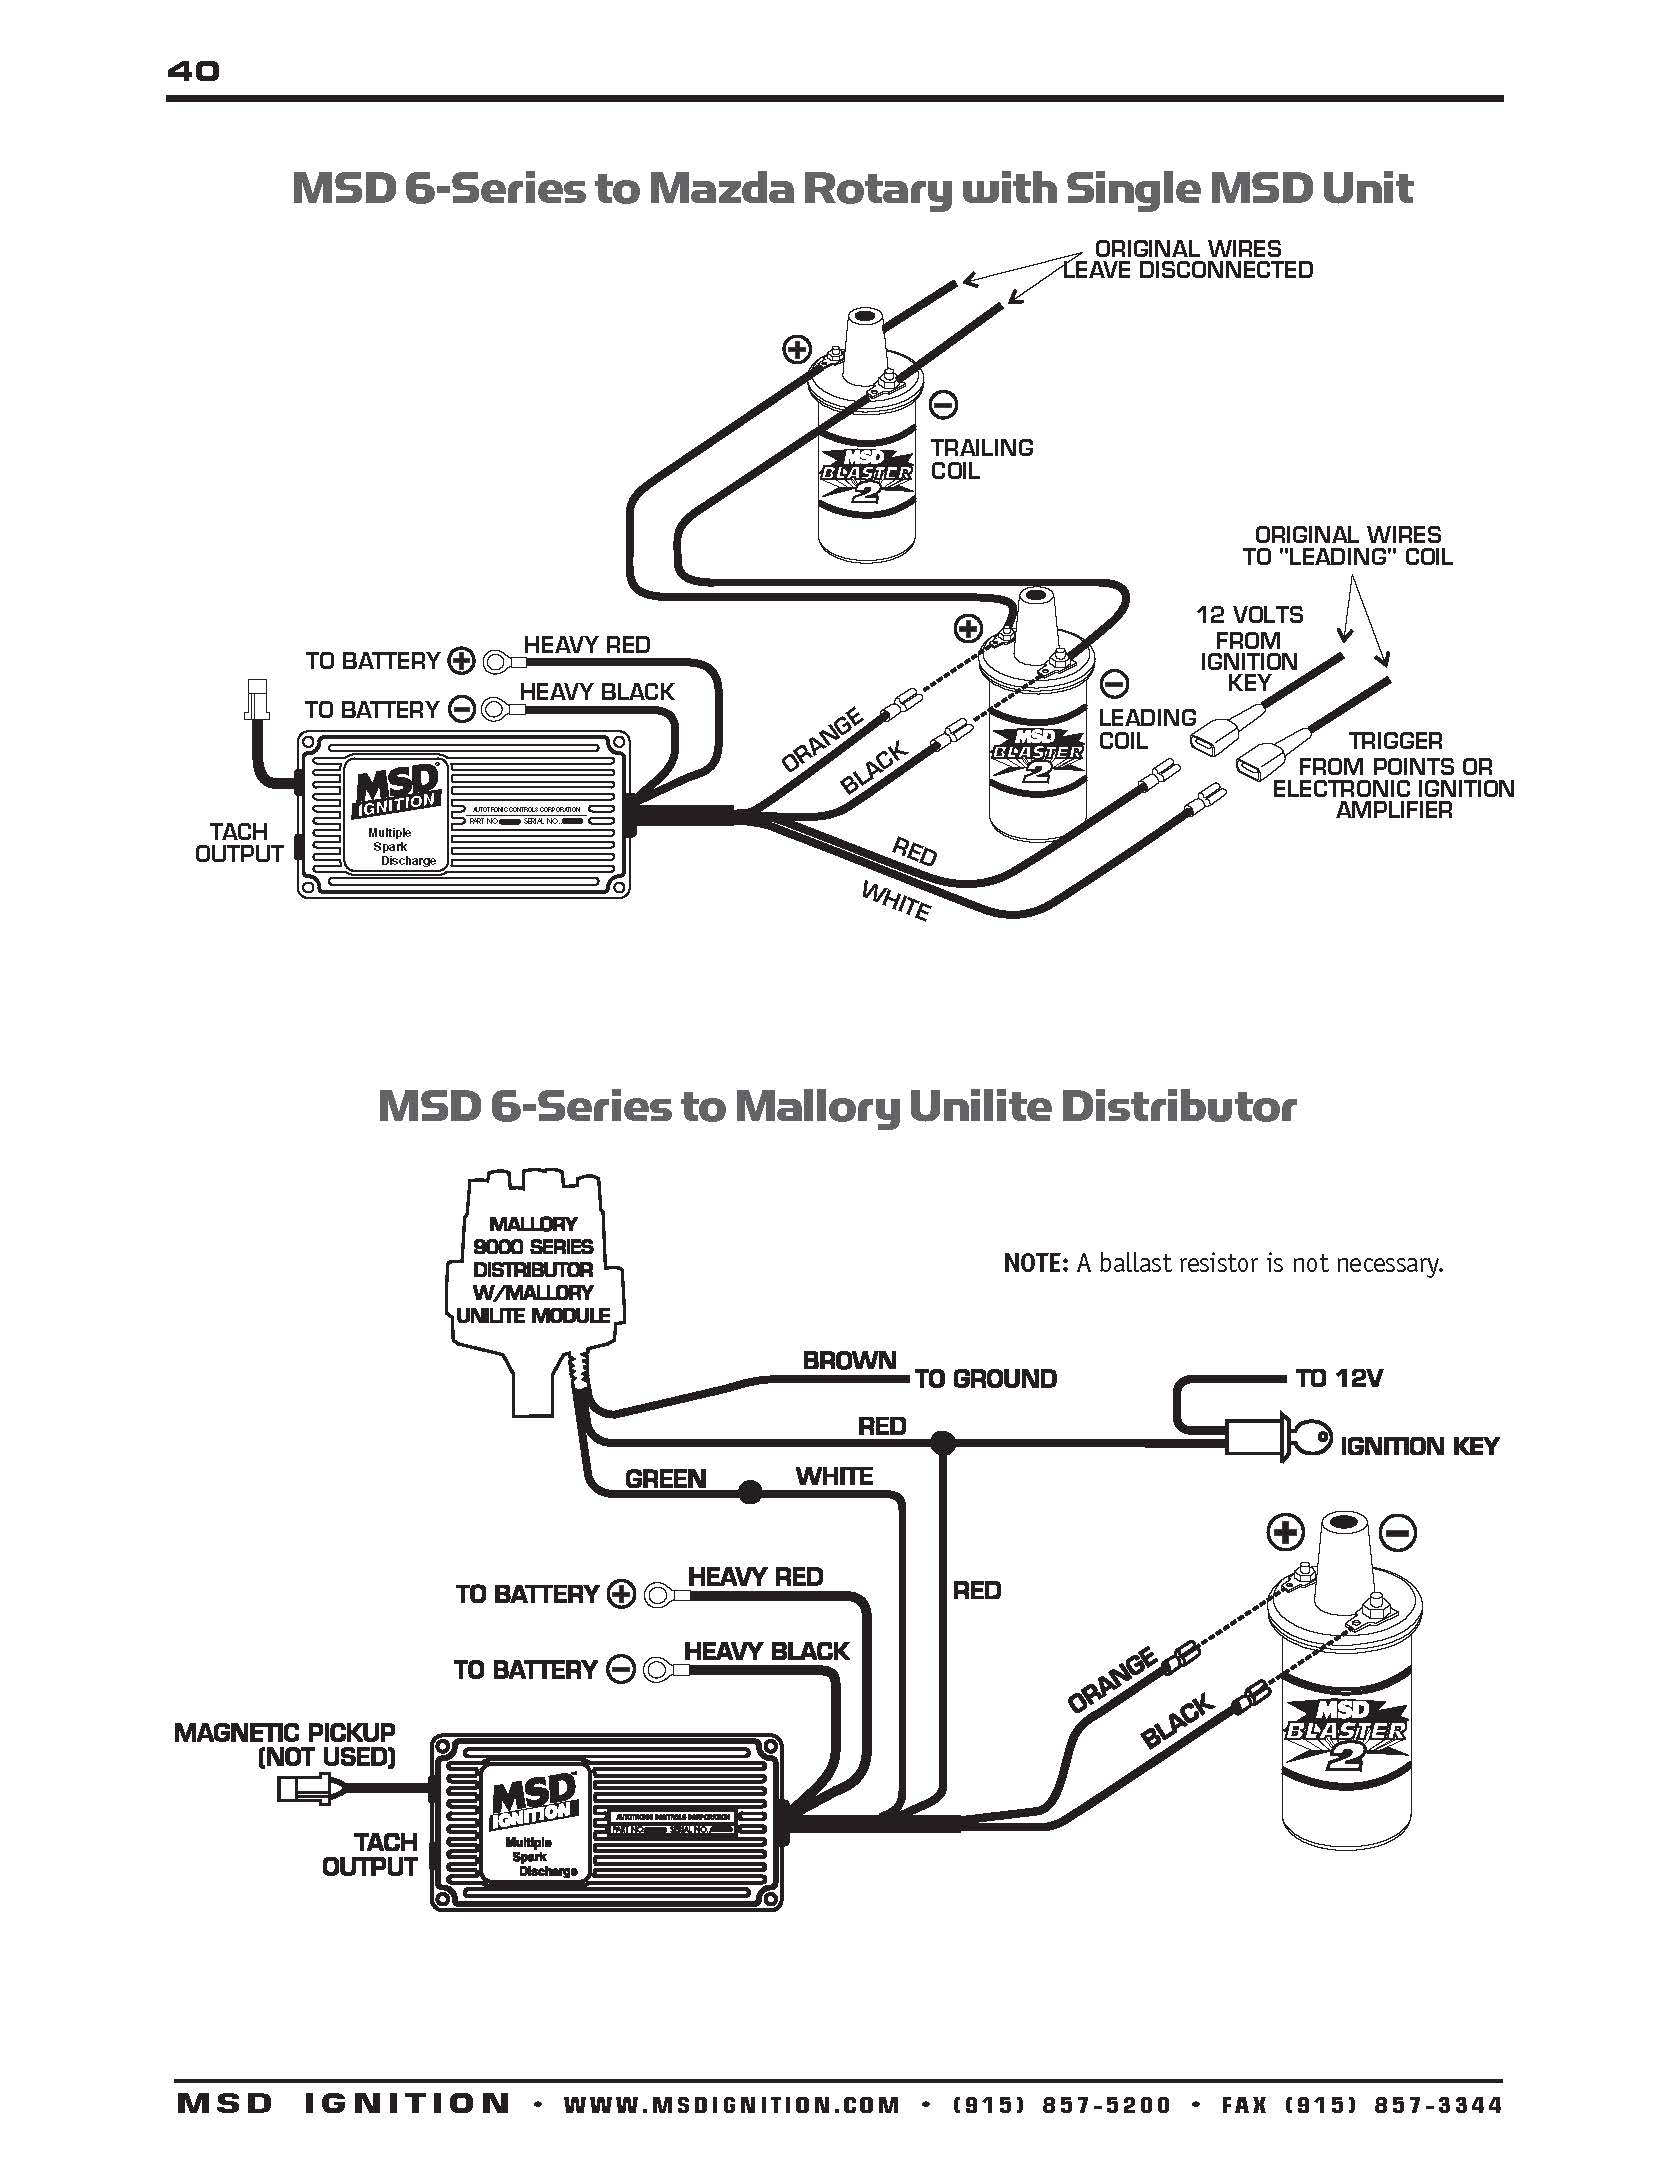 Mallory Ignition Wiring Diagram Pro 9000 - wiring diagram ground-cover -  ground-cover.pennyapp.itPennyApp